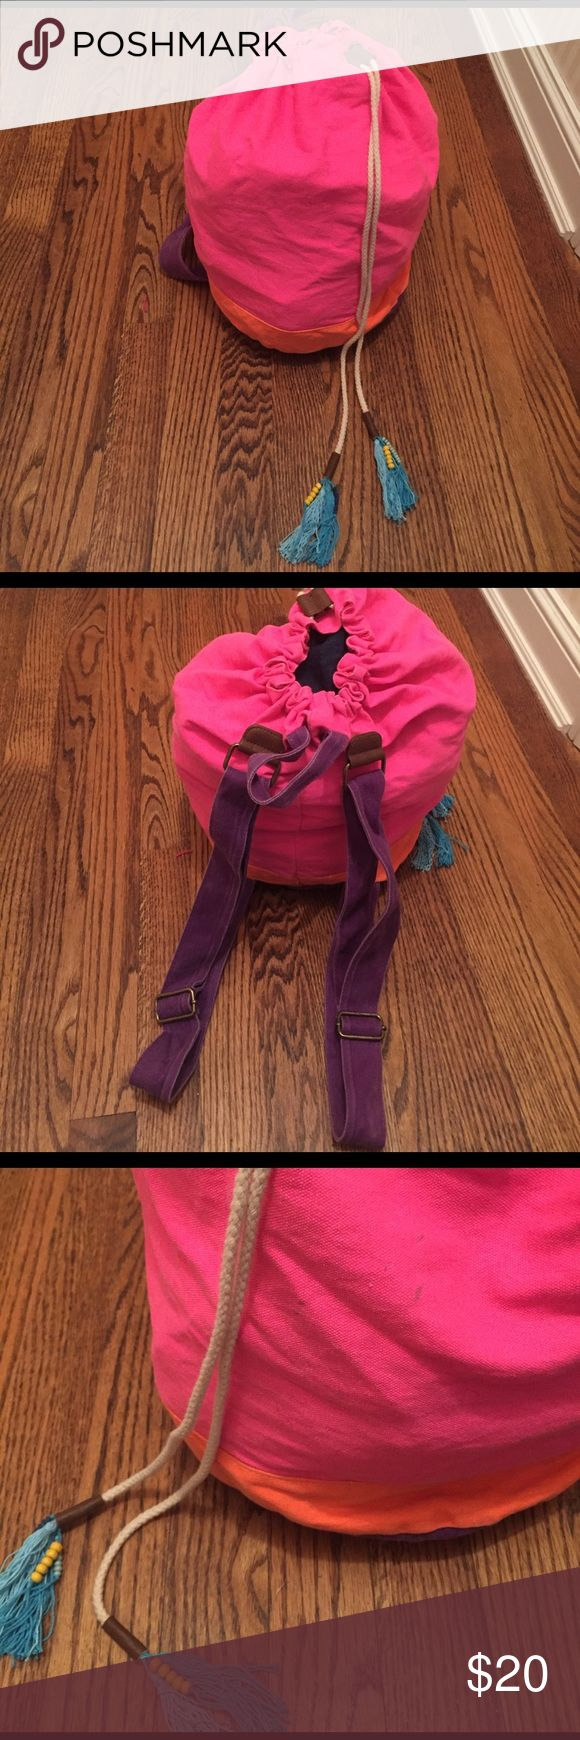 Festival backpack Pink orange and purple canvas drawstring backpack with blue fringe tassel pulls.. perfect bag for festivals. Good conditions with a few spots as pictured. Bought from Target Mossimo Supply Co Bags Backpacks